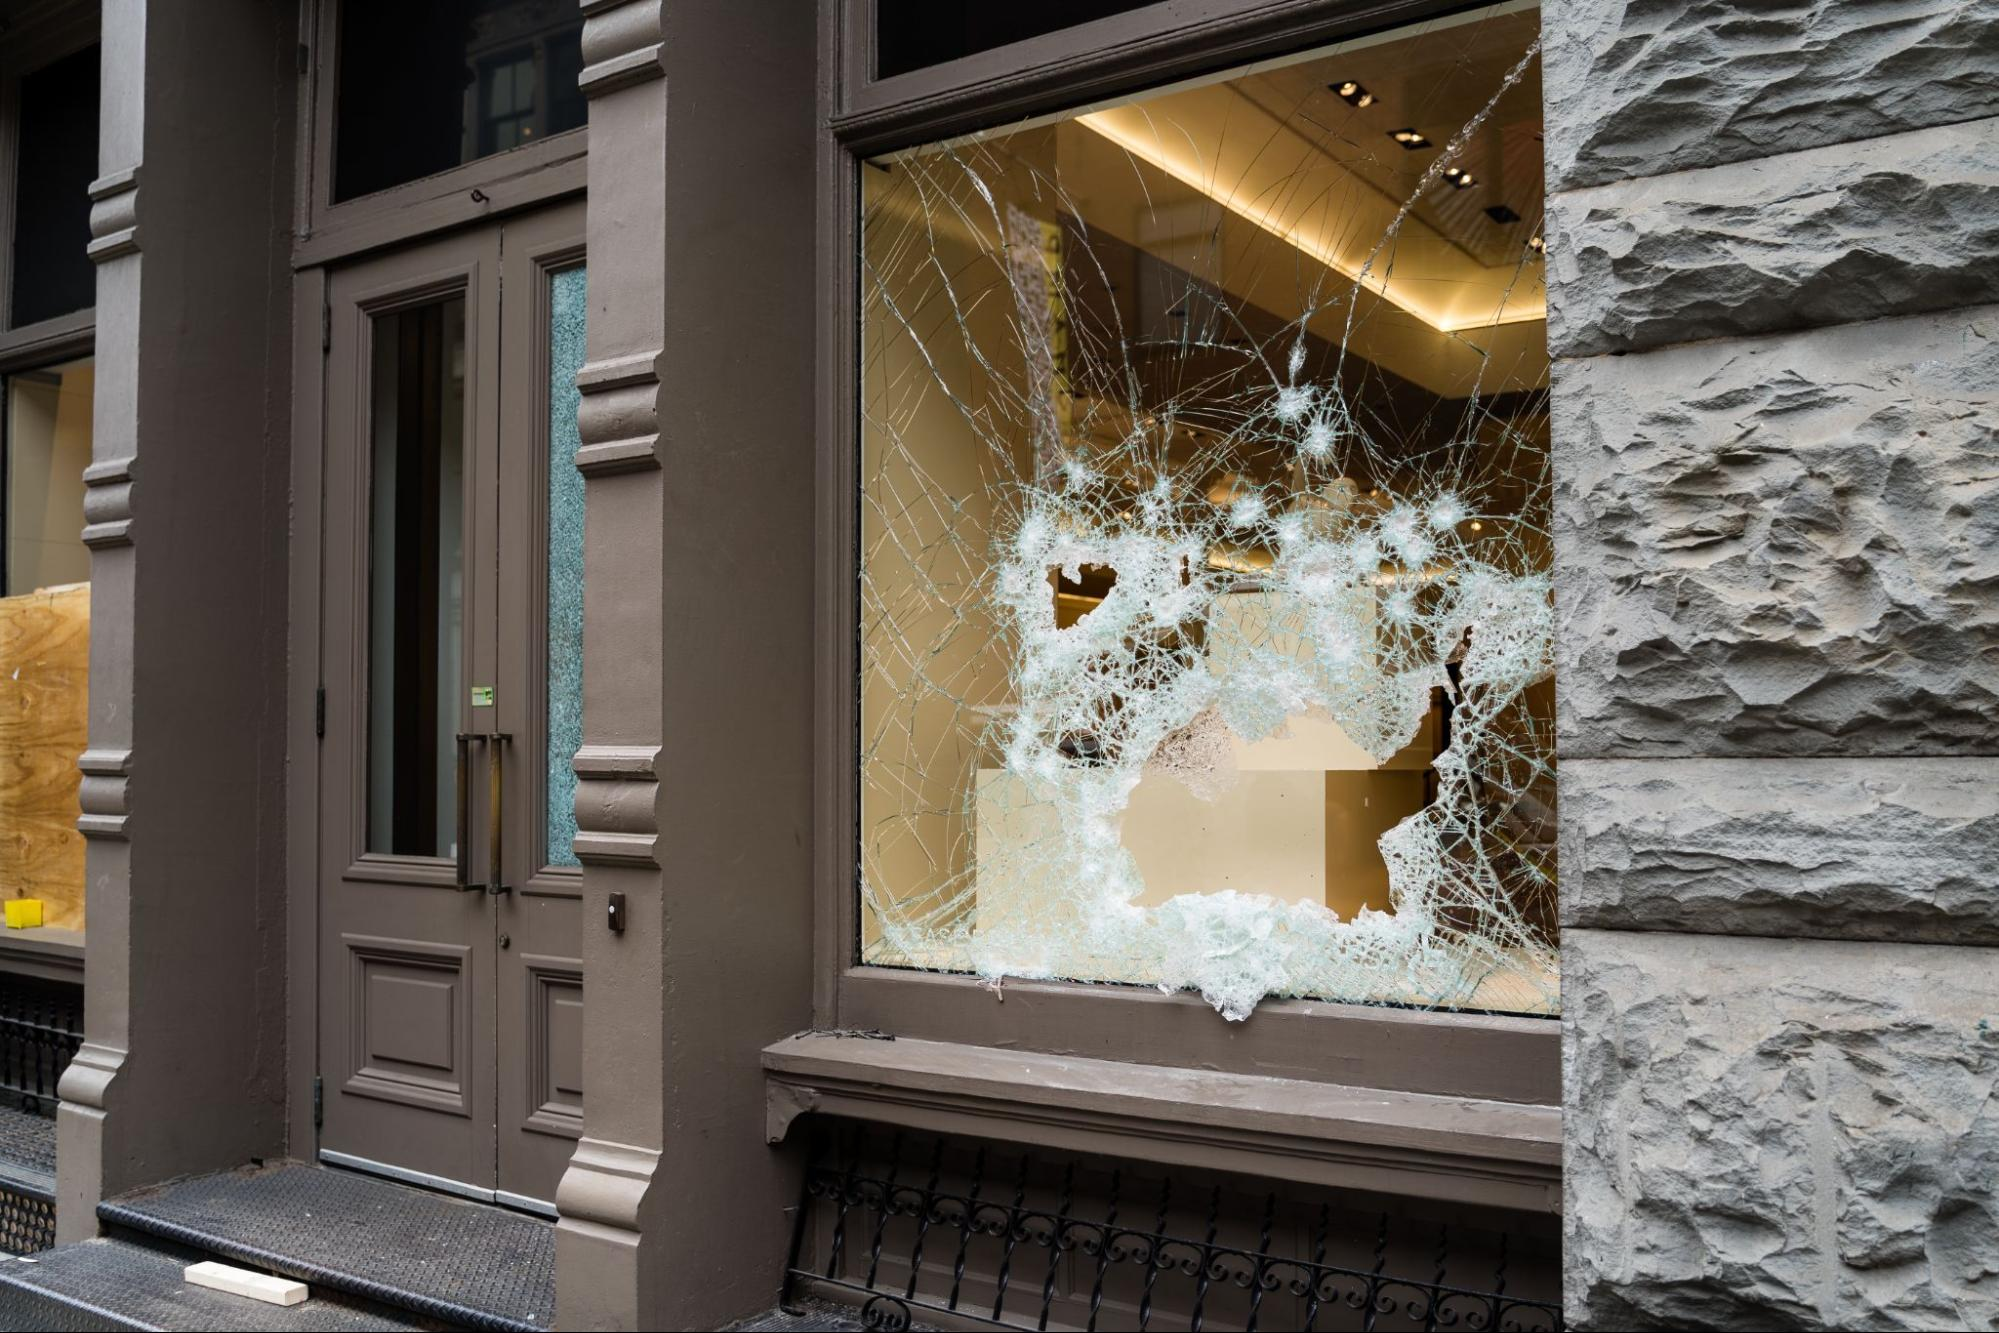 Broken windows caused by vandalism, a common landlord insurance claim